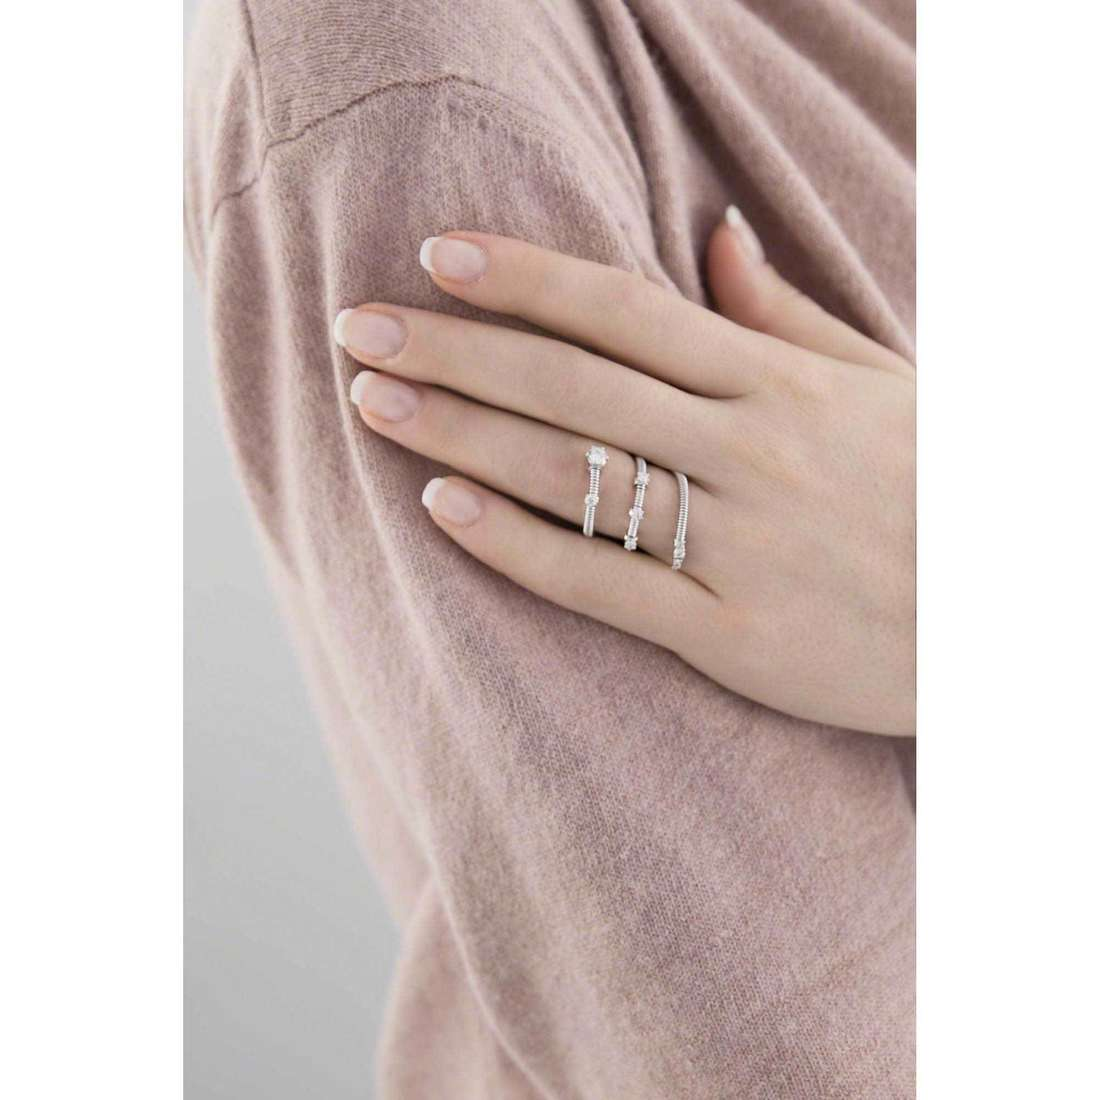 Bliss rings Silver Light woman 20061882 indosso